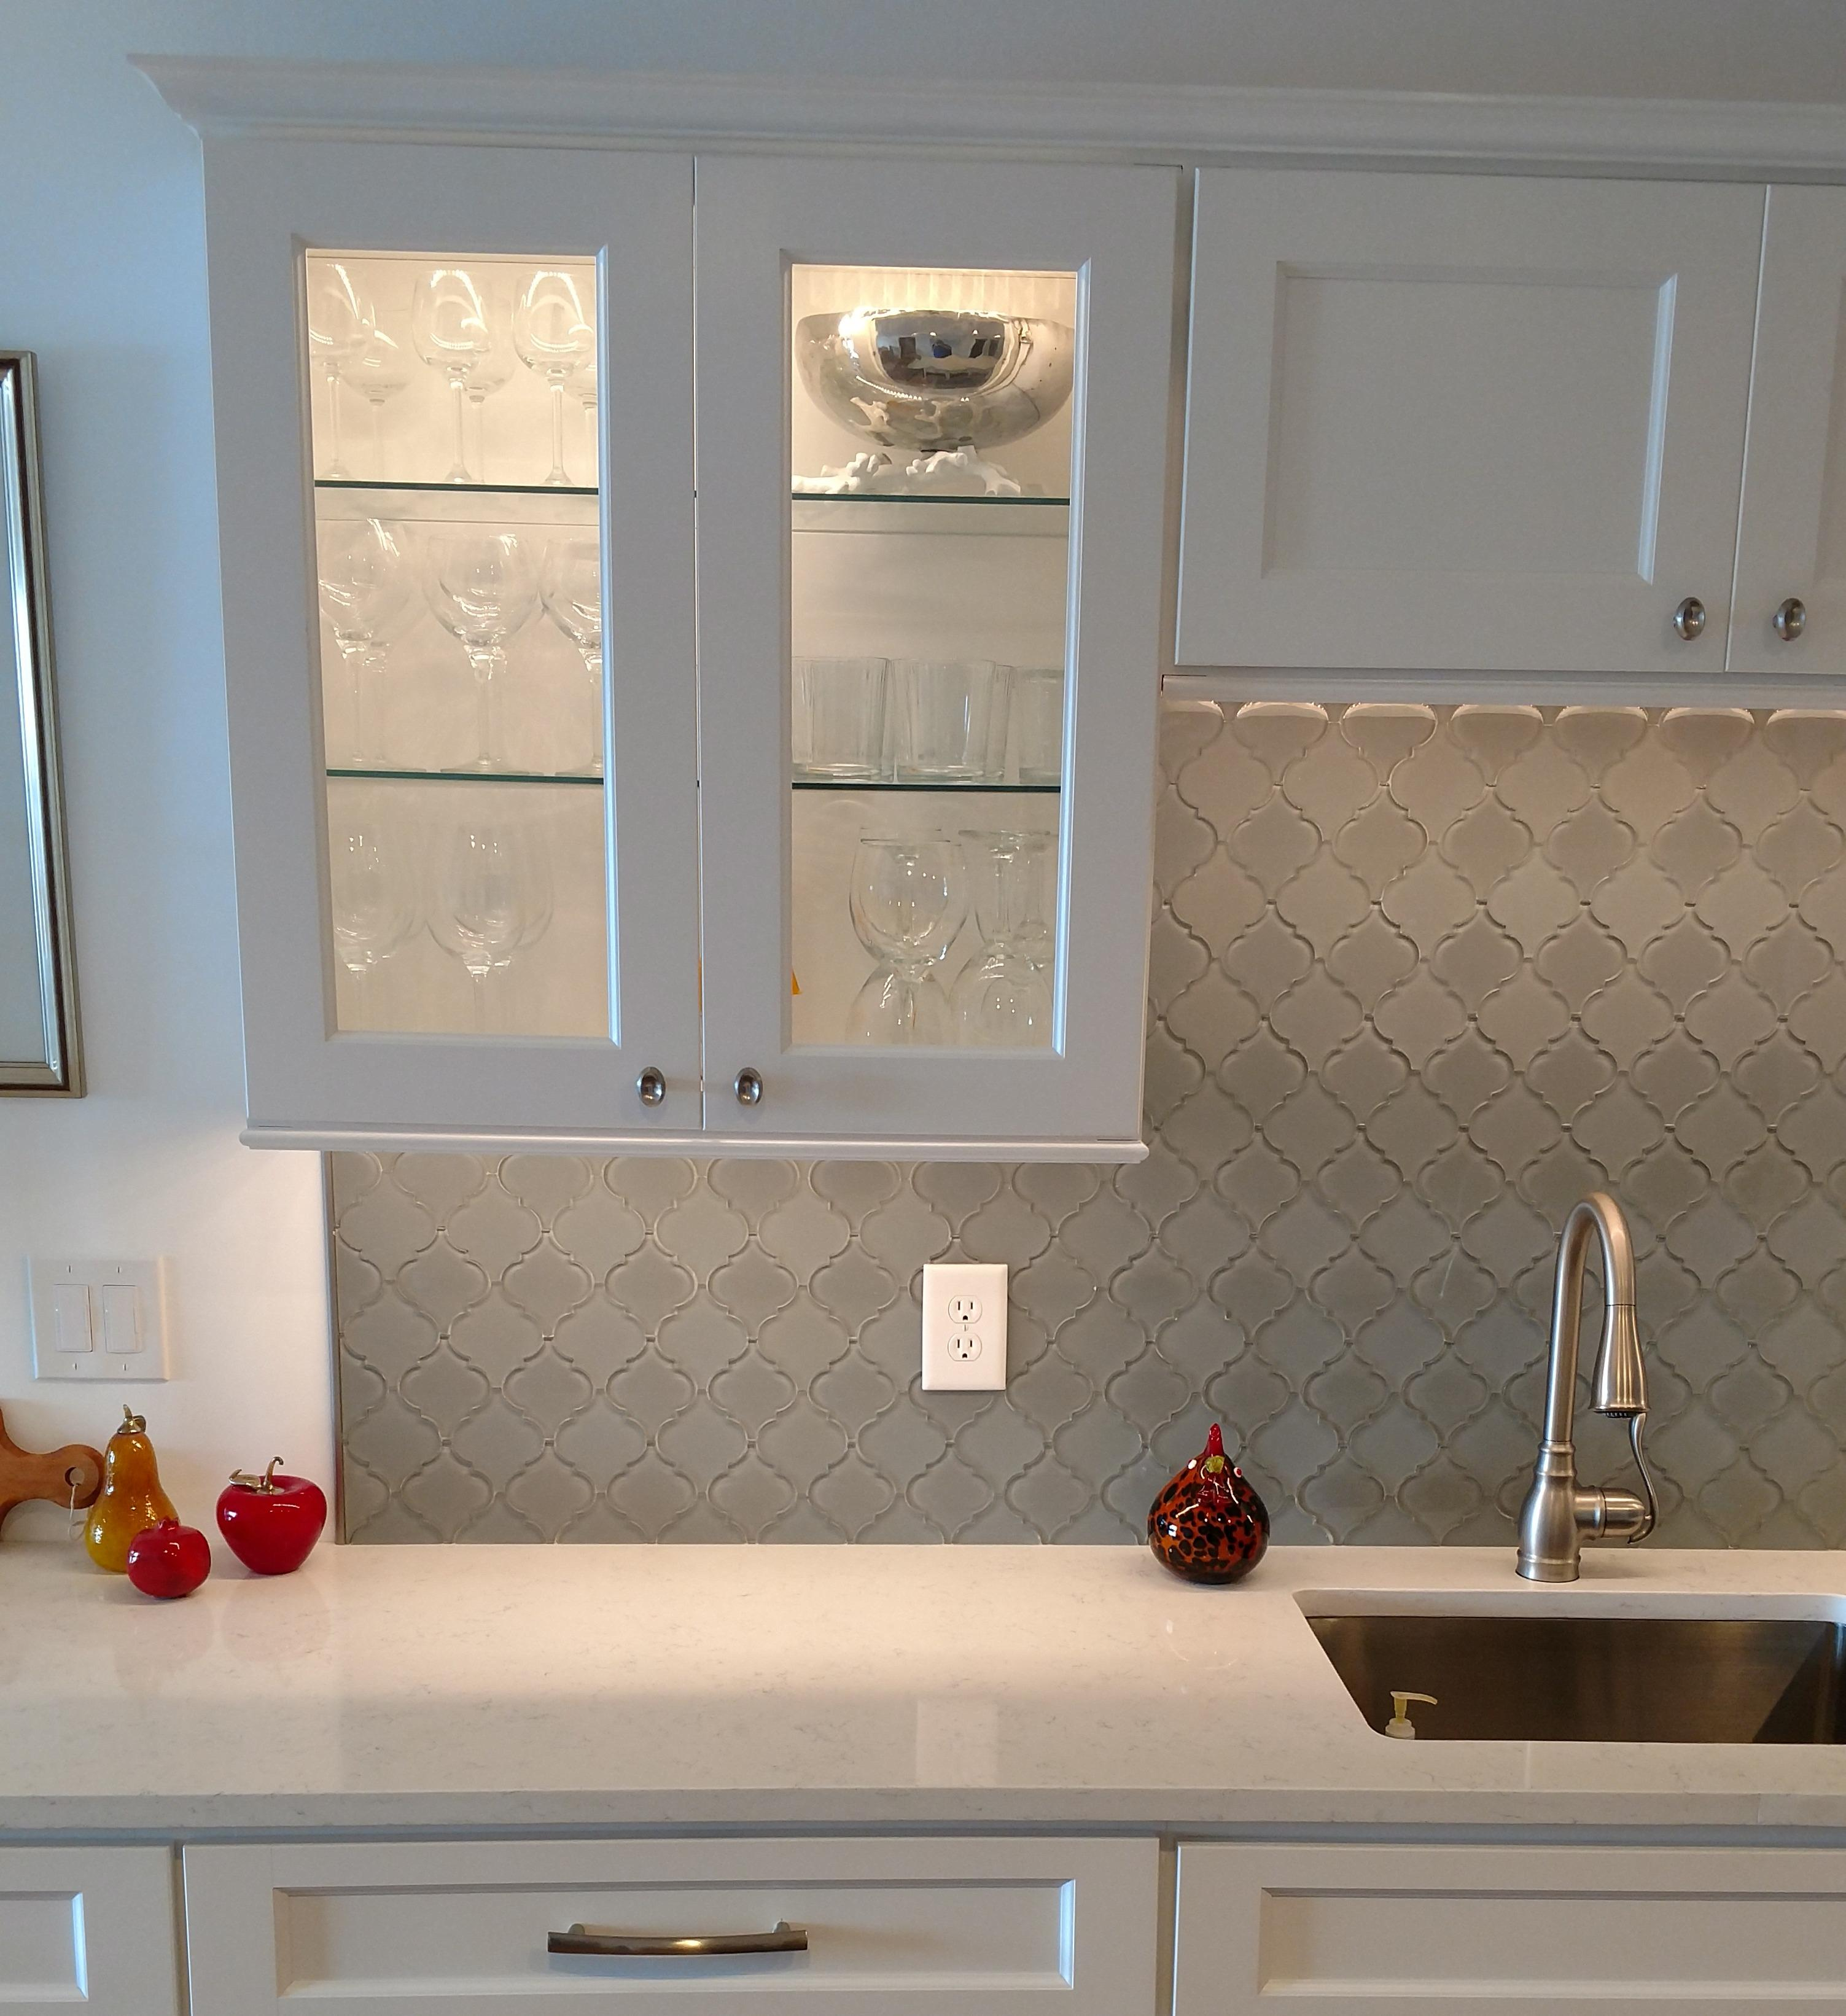 Accurate Upgrades Home Improvements LLC image 13